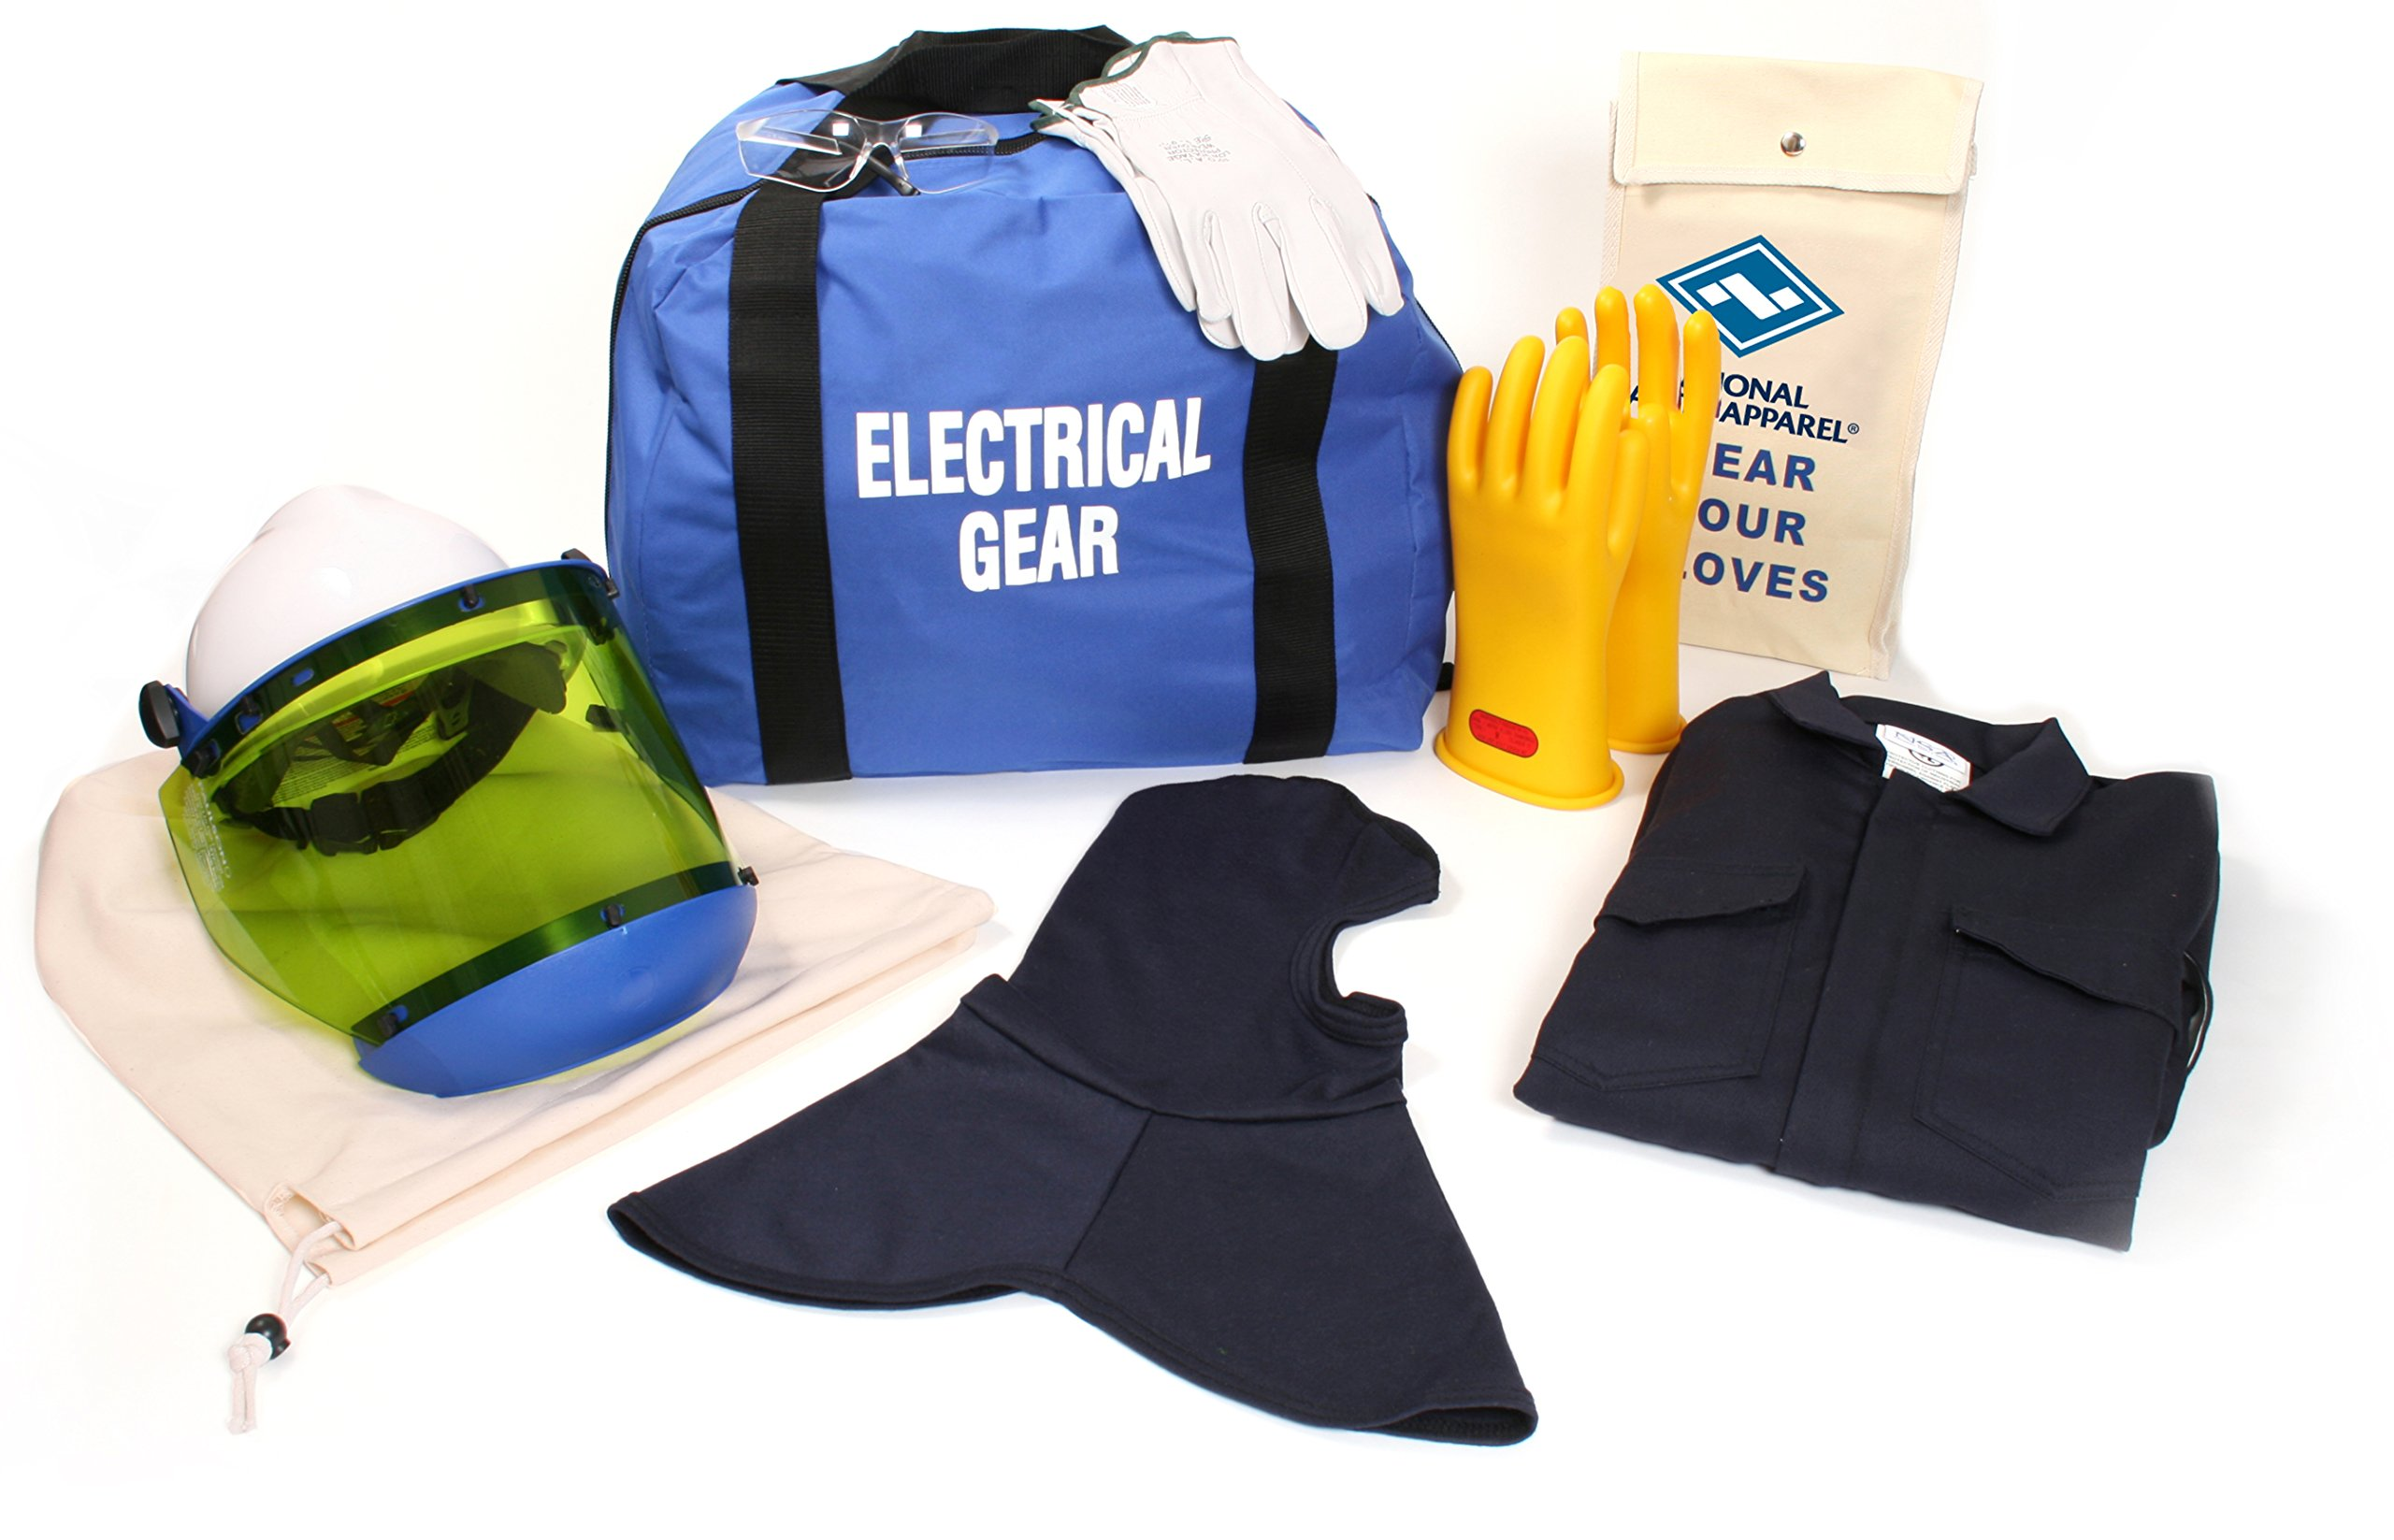 National Safety Apparel KIT2CV08BSM12 ArcGuard UltraSoft Arc Flash Kit with Coverall and Balaclava, 8 Calorie, Small, Size 12, Navy